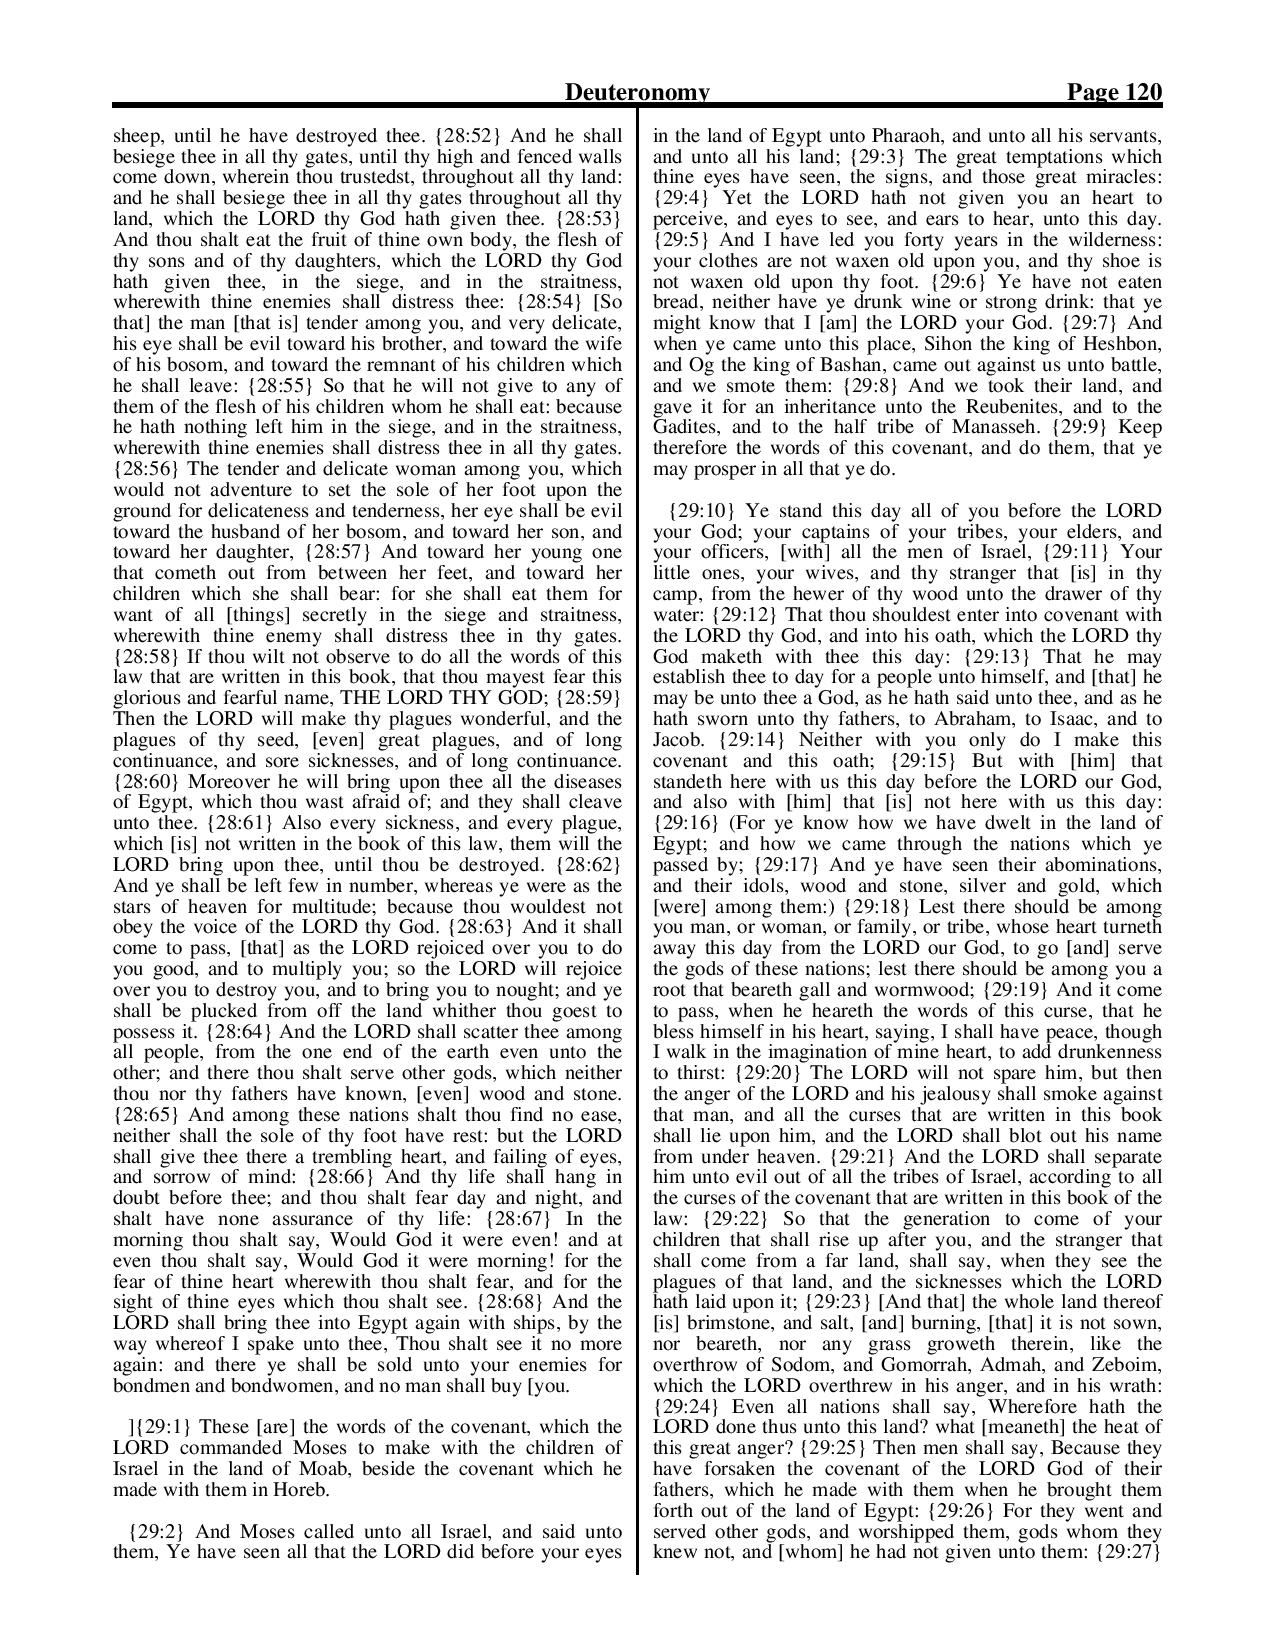 King-James-Bible-KJV-Bible-PDF-page-141